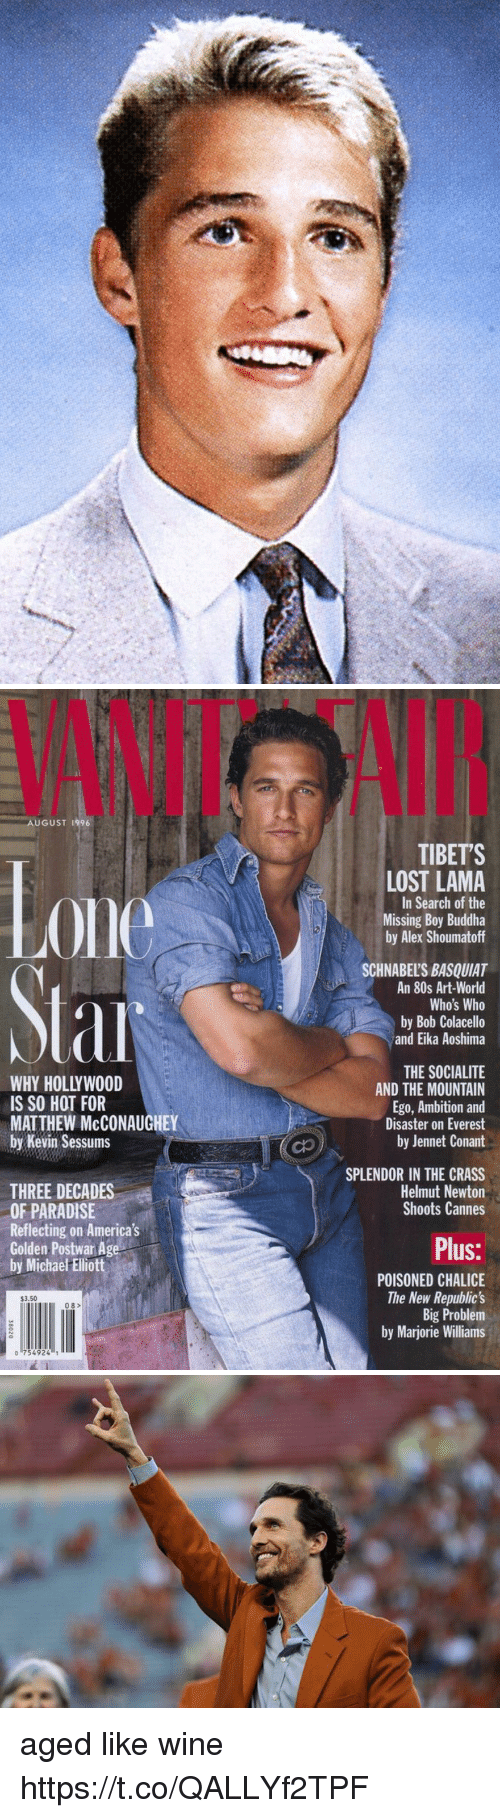 michae: VANIT  AI  AUGUST 1996  TIBETS  0ne  LOST LAMA  In Search of the  Missing Boy Buddha  by Alex Shoumatoff  SCHNABEL'S BASQUIAT  An 80s Art-World  Who's Who  by Bob Colacello  and Eika Aoshima  WHY HOLLYWOOD  IS SO HOT FOR  MATTHEW McCONAUGHEY  by Kevin Sessums  THE SOCIALITE  AND THE MOUNTAIN  Ego, Ambition and  Disaster on Everest  by Jennet Conant  SPLENDOR IN THE CRASS  Helmut Newton  Shoots Cannes  THREE DECADES  OF PARADISE  Reflecting on America's  Golden Postwar Age  by Michae Ellott  Plus:  POISONED CHALICE  The New Republic's  Big Problem  by Marjorie Williams  $3.50  08>  o 754924 aged like wine https://t.co/QALLYf2TPF